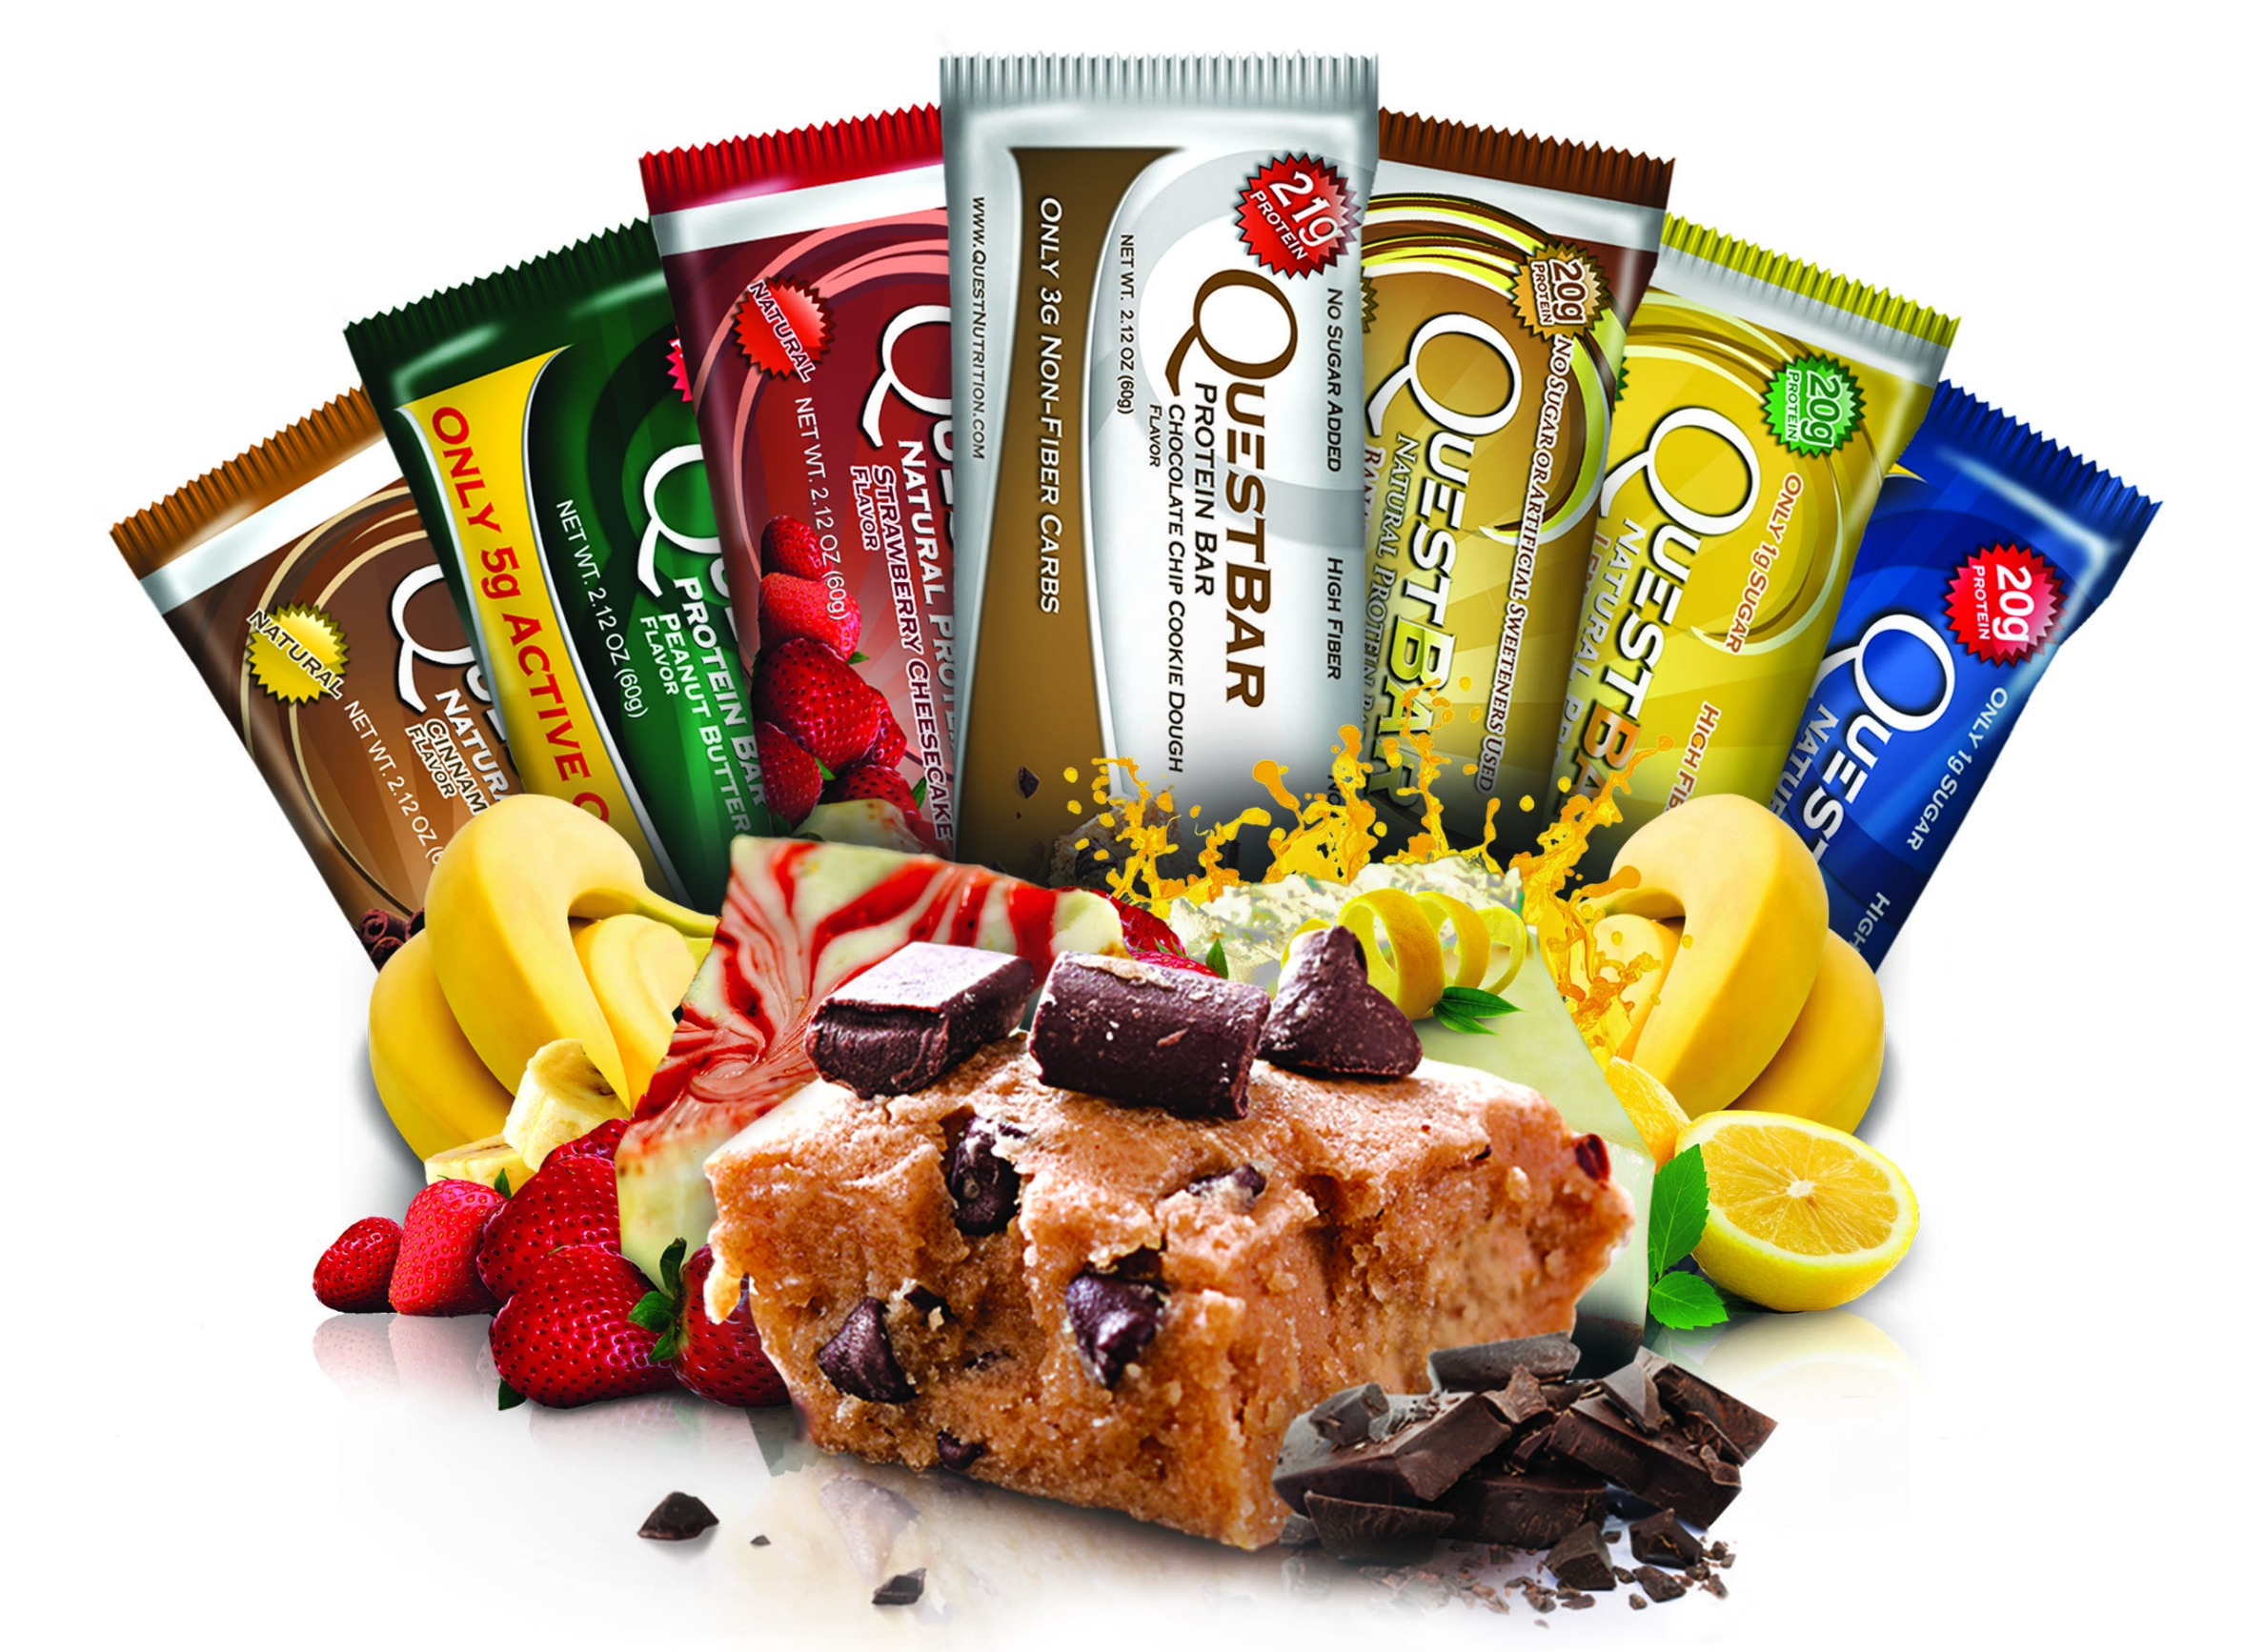 quest bars cropped